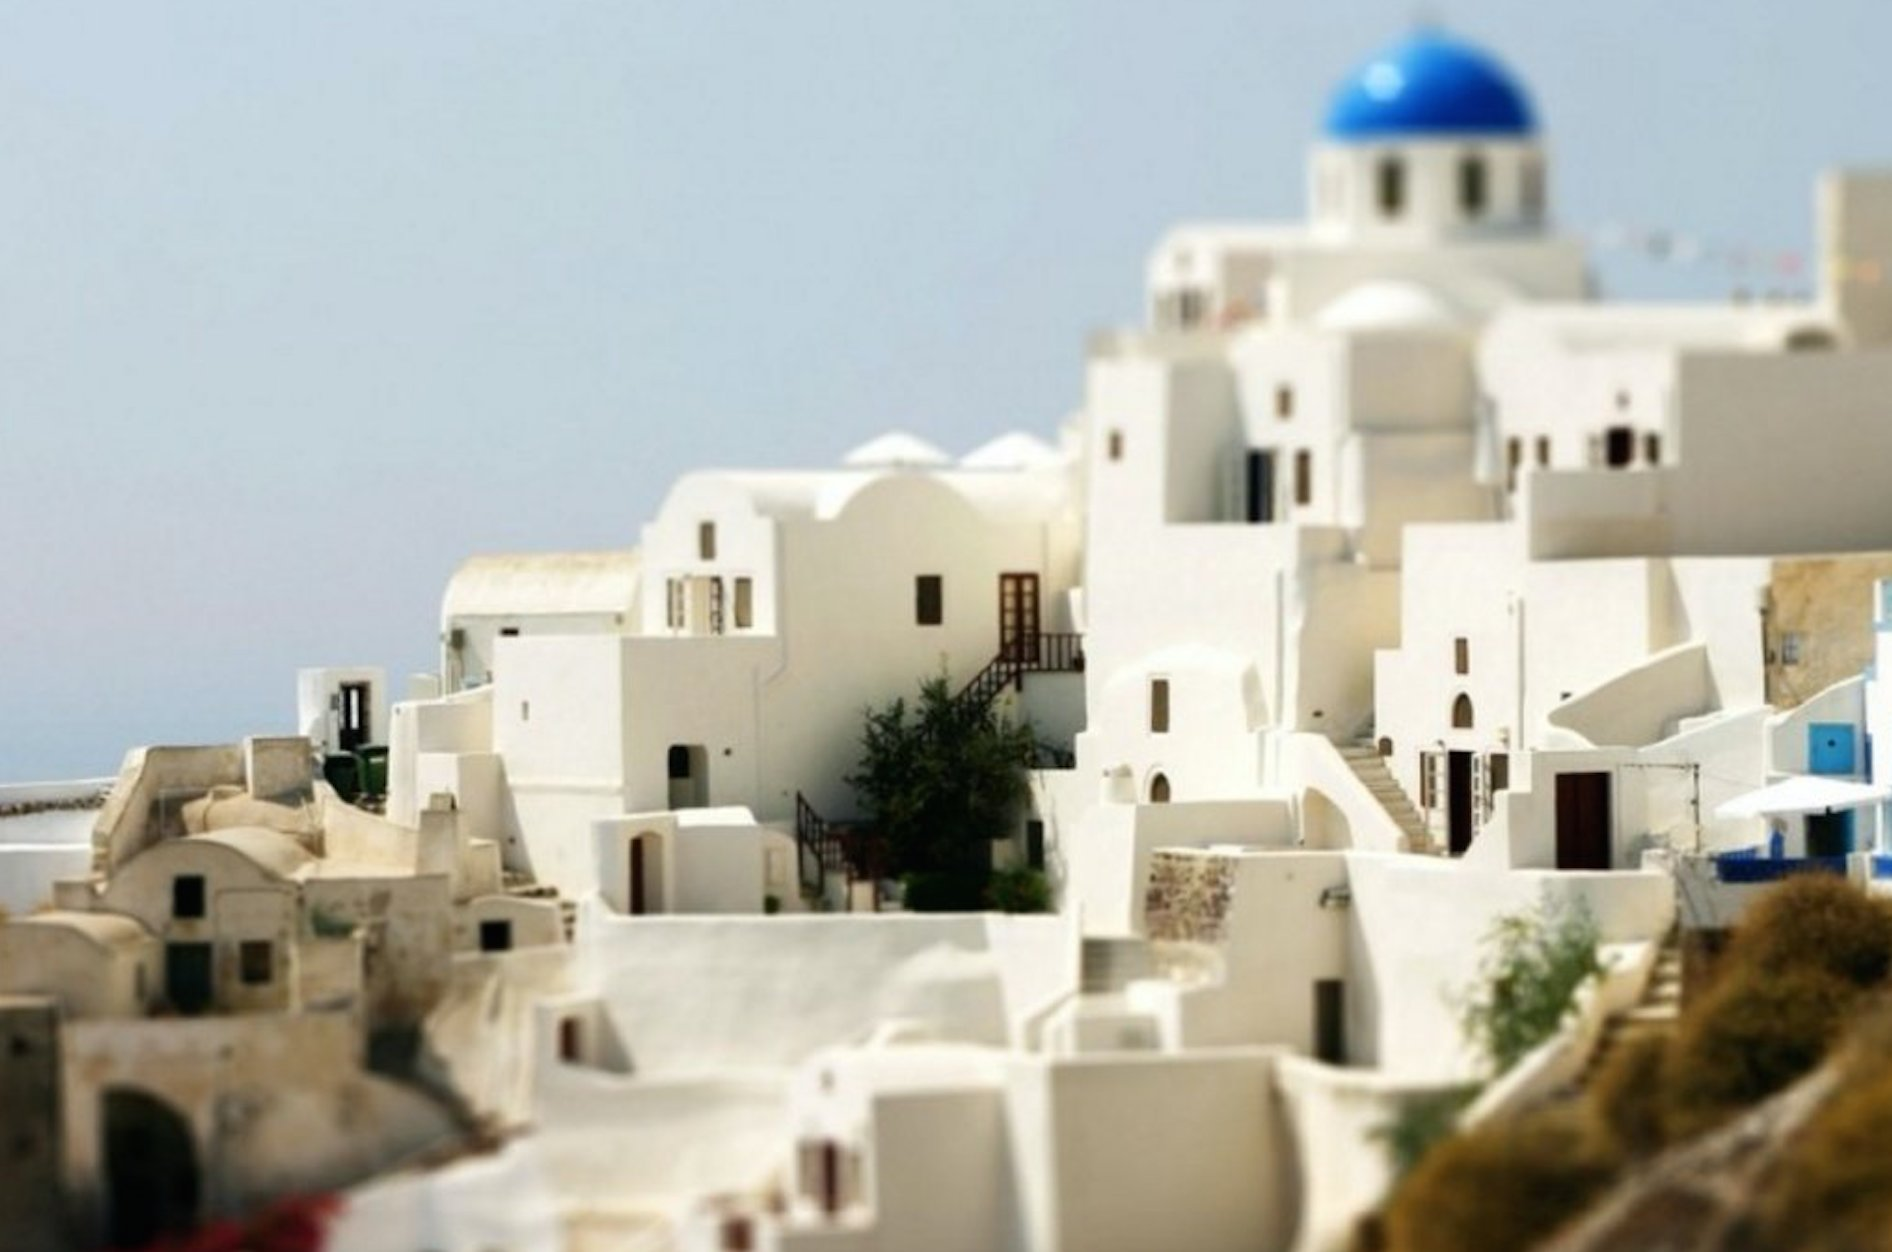 cyclads-yacht-cruise-santorini-itineary-route-7-days-weekly-1-week